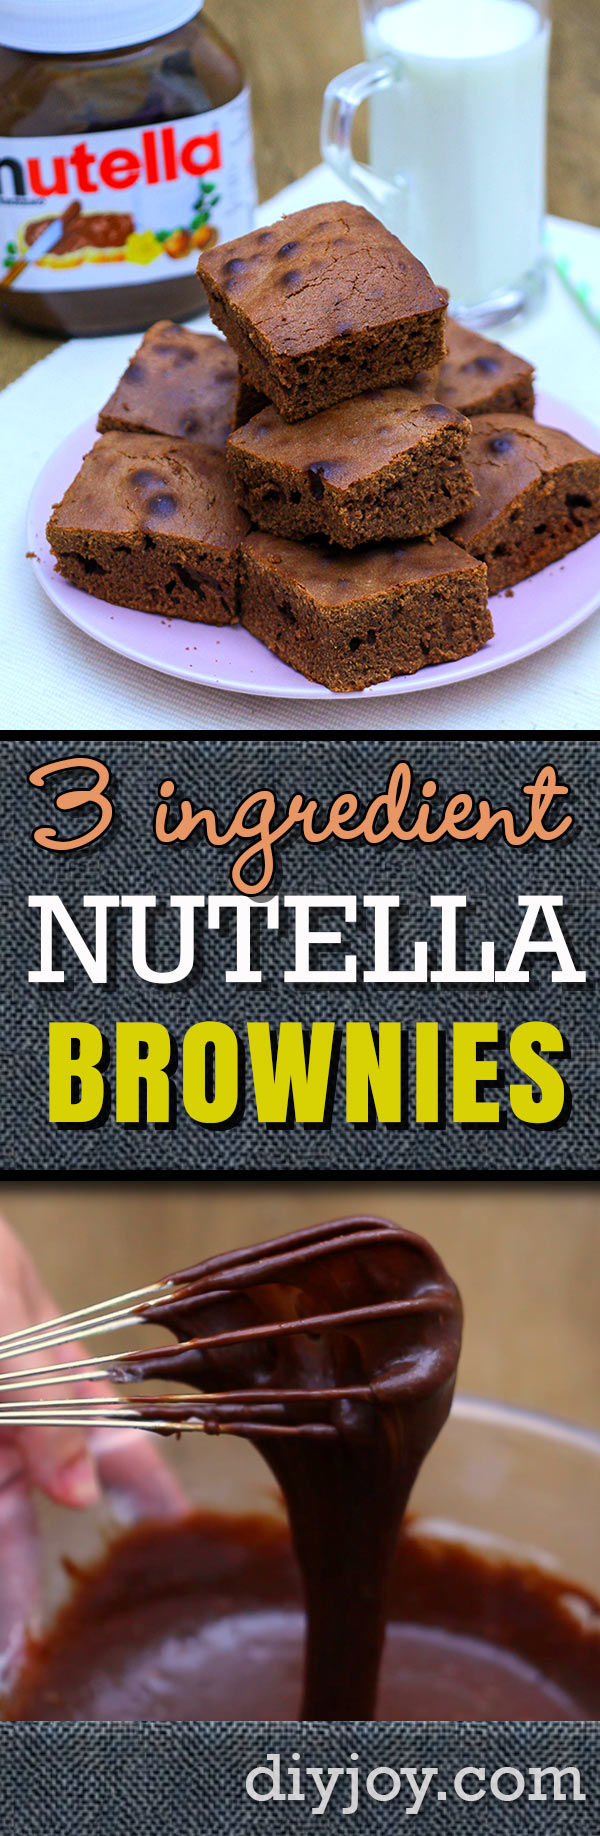 Nutella Brownies are Quick and Easy With This 3 Ingredient Recipe Idea - Video Tutorial with Step by Step Instructions - Quick Dessert Idea to Take To A Party